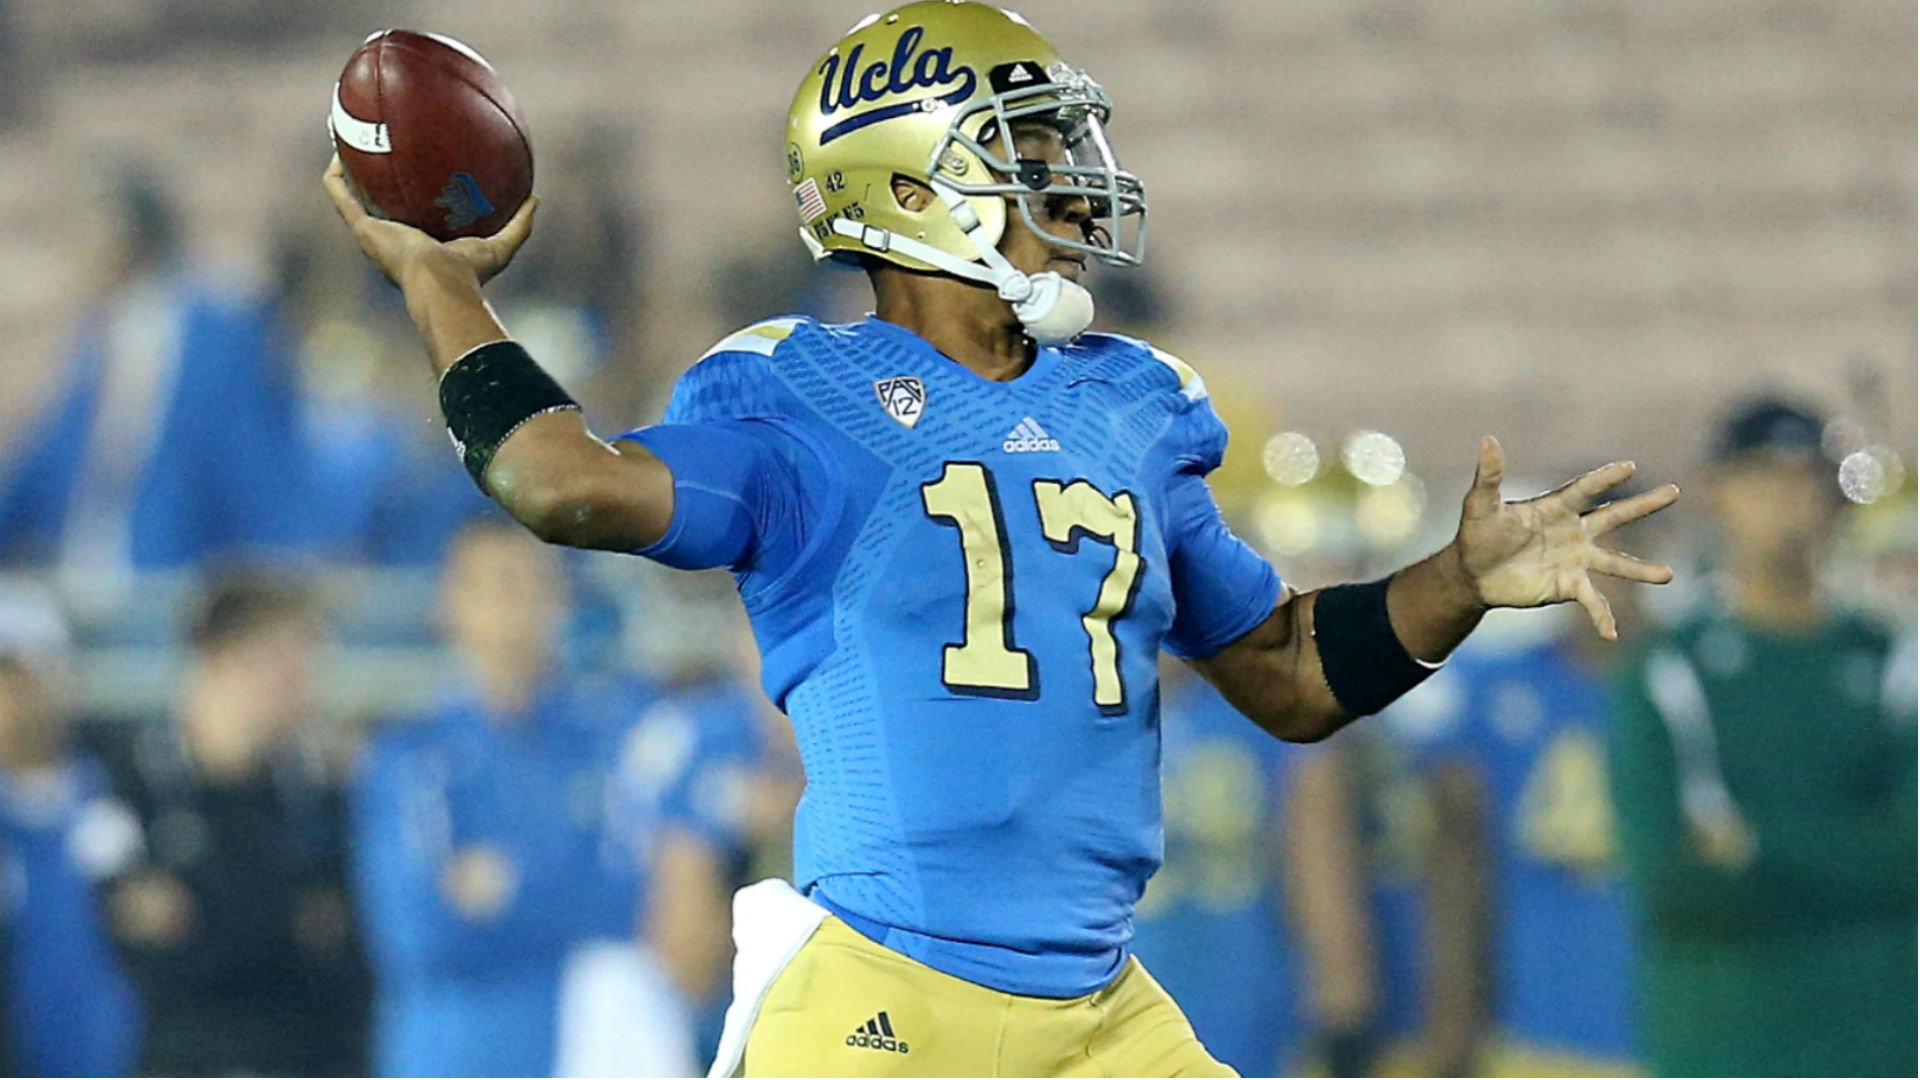 Stanford vs. UCLA betting preview and pick – Balanced Bruins face offensively-challenged Cardinal